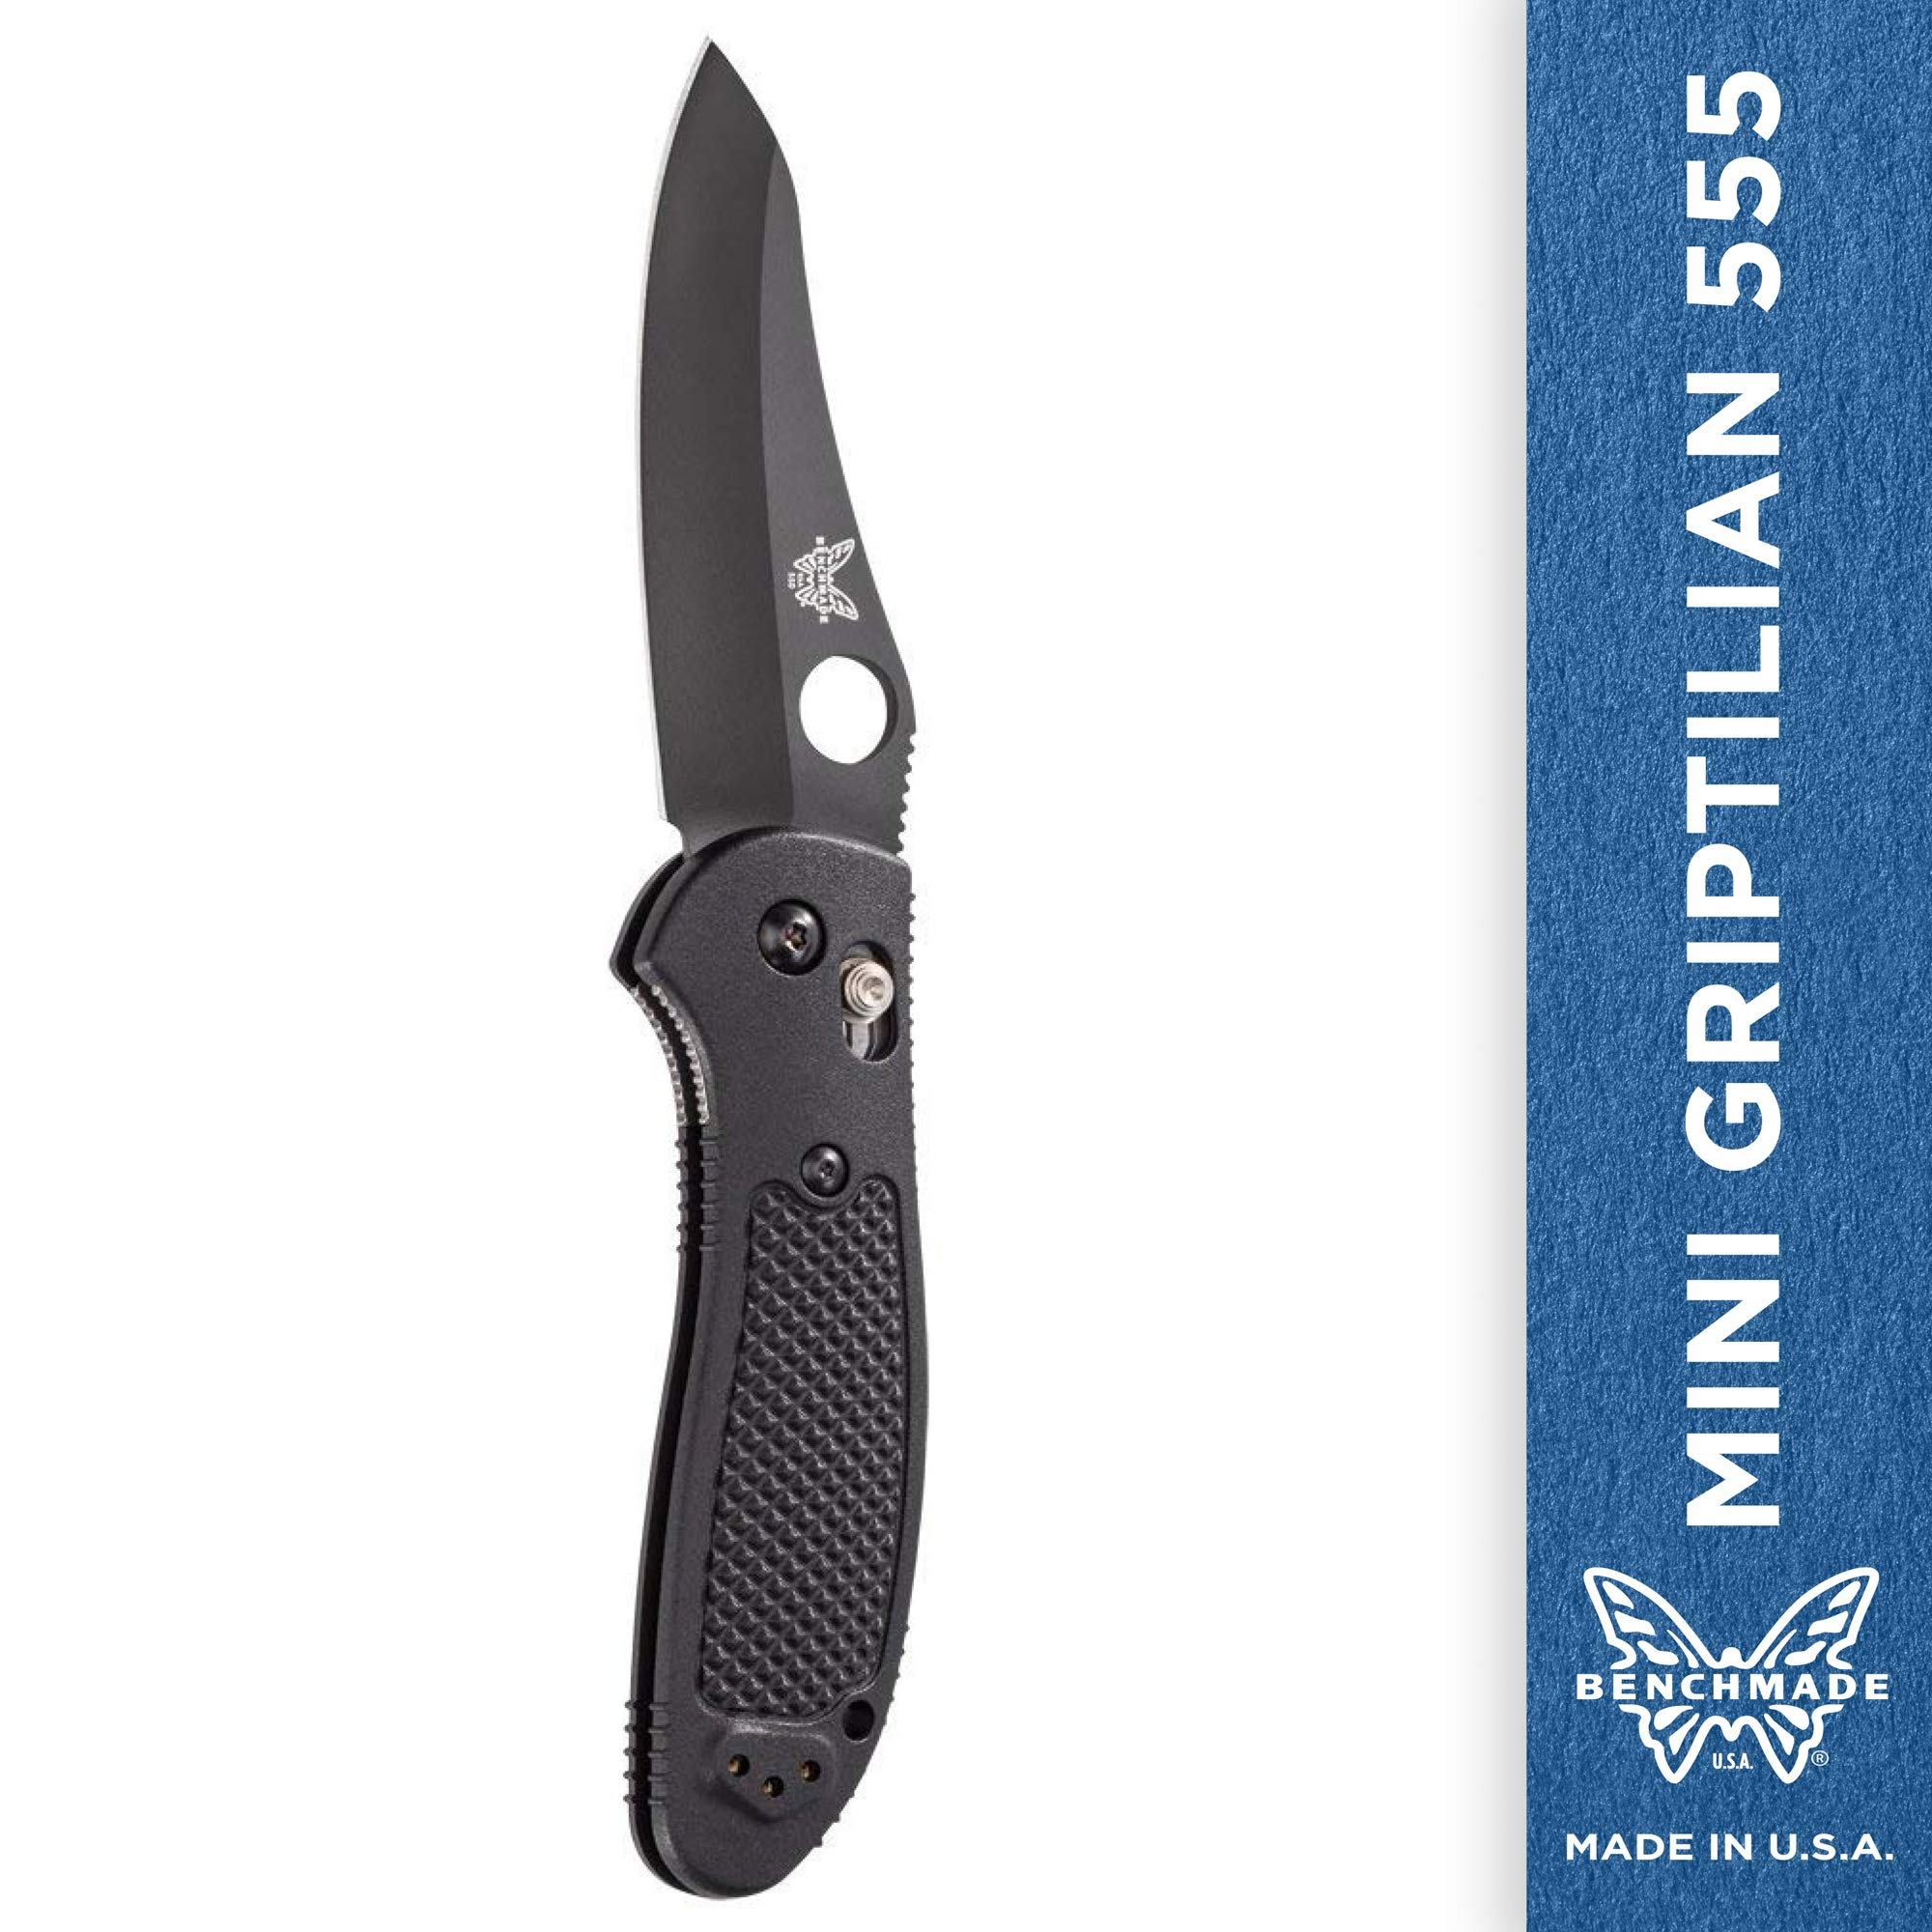 Benchmade - Mini Griptilian 555 Knife with CPM-S30V Steel, Sheepsfoot Blade, Plain Edge, Coated Finish, Black Handle